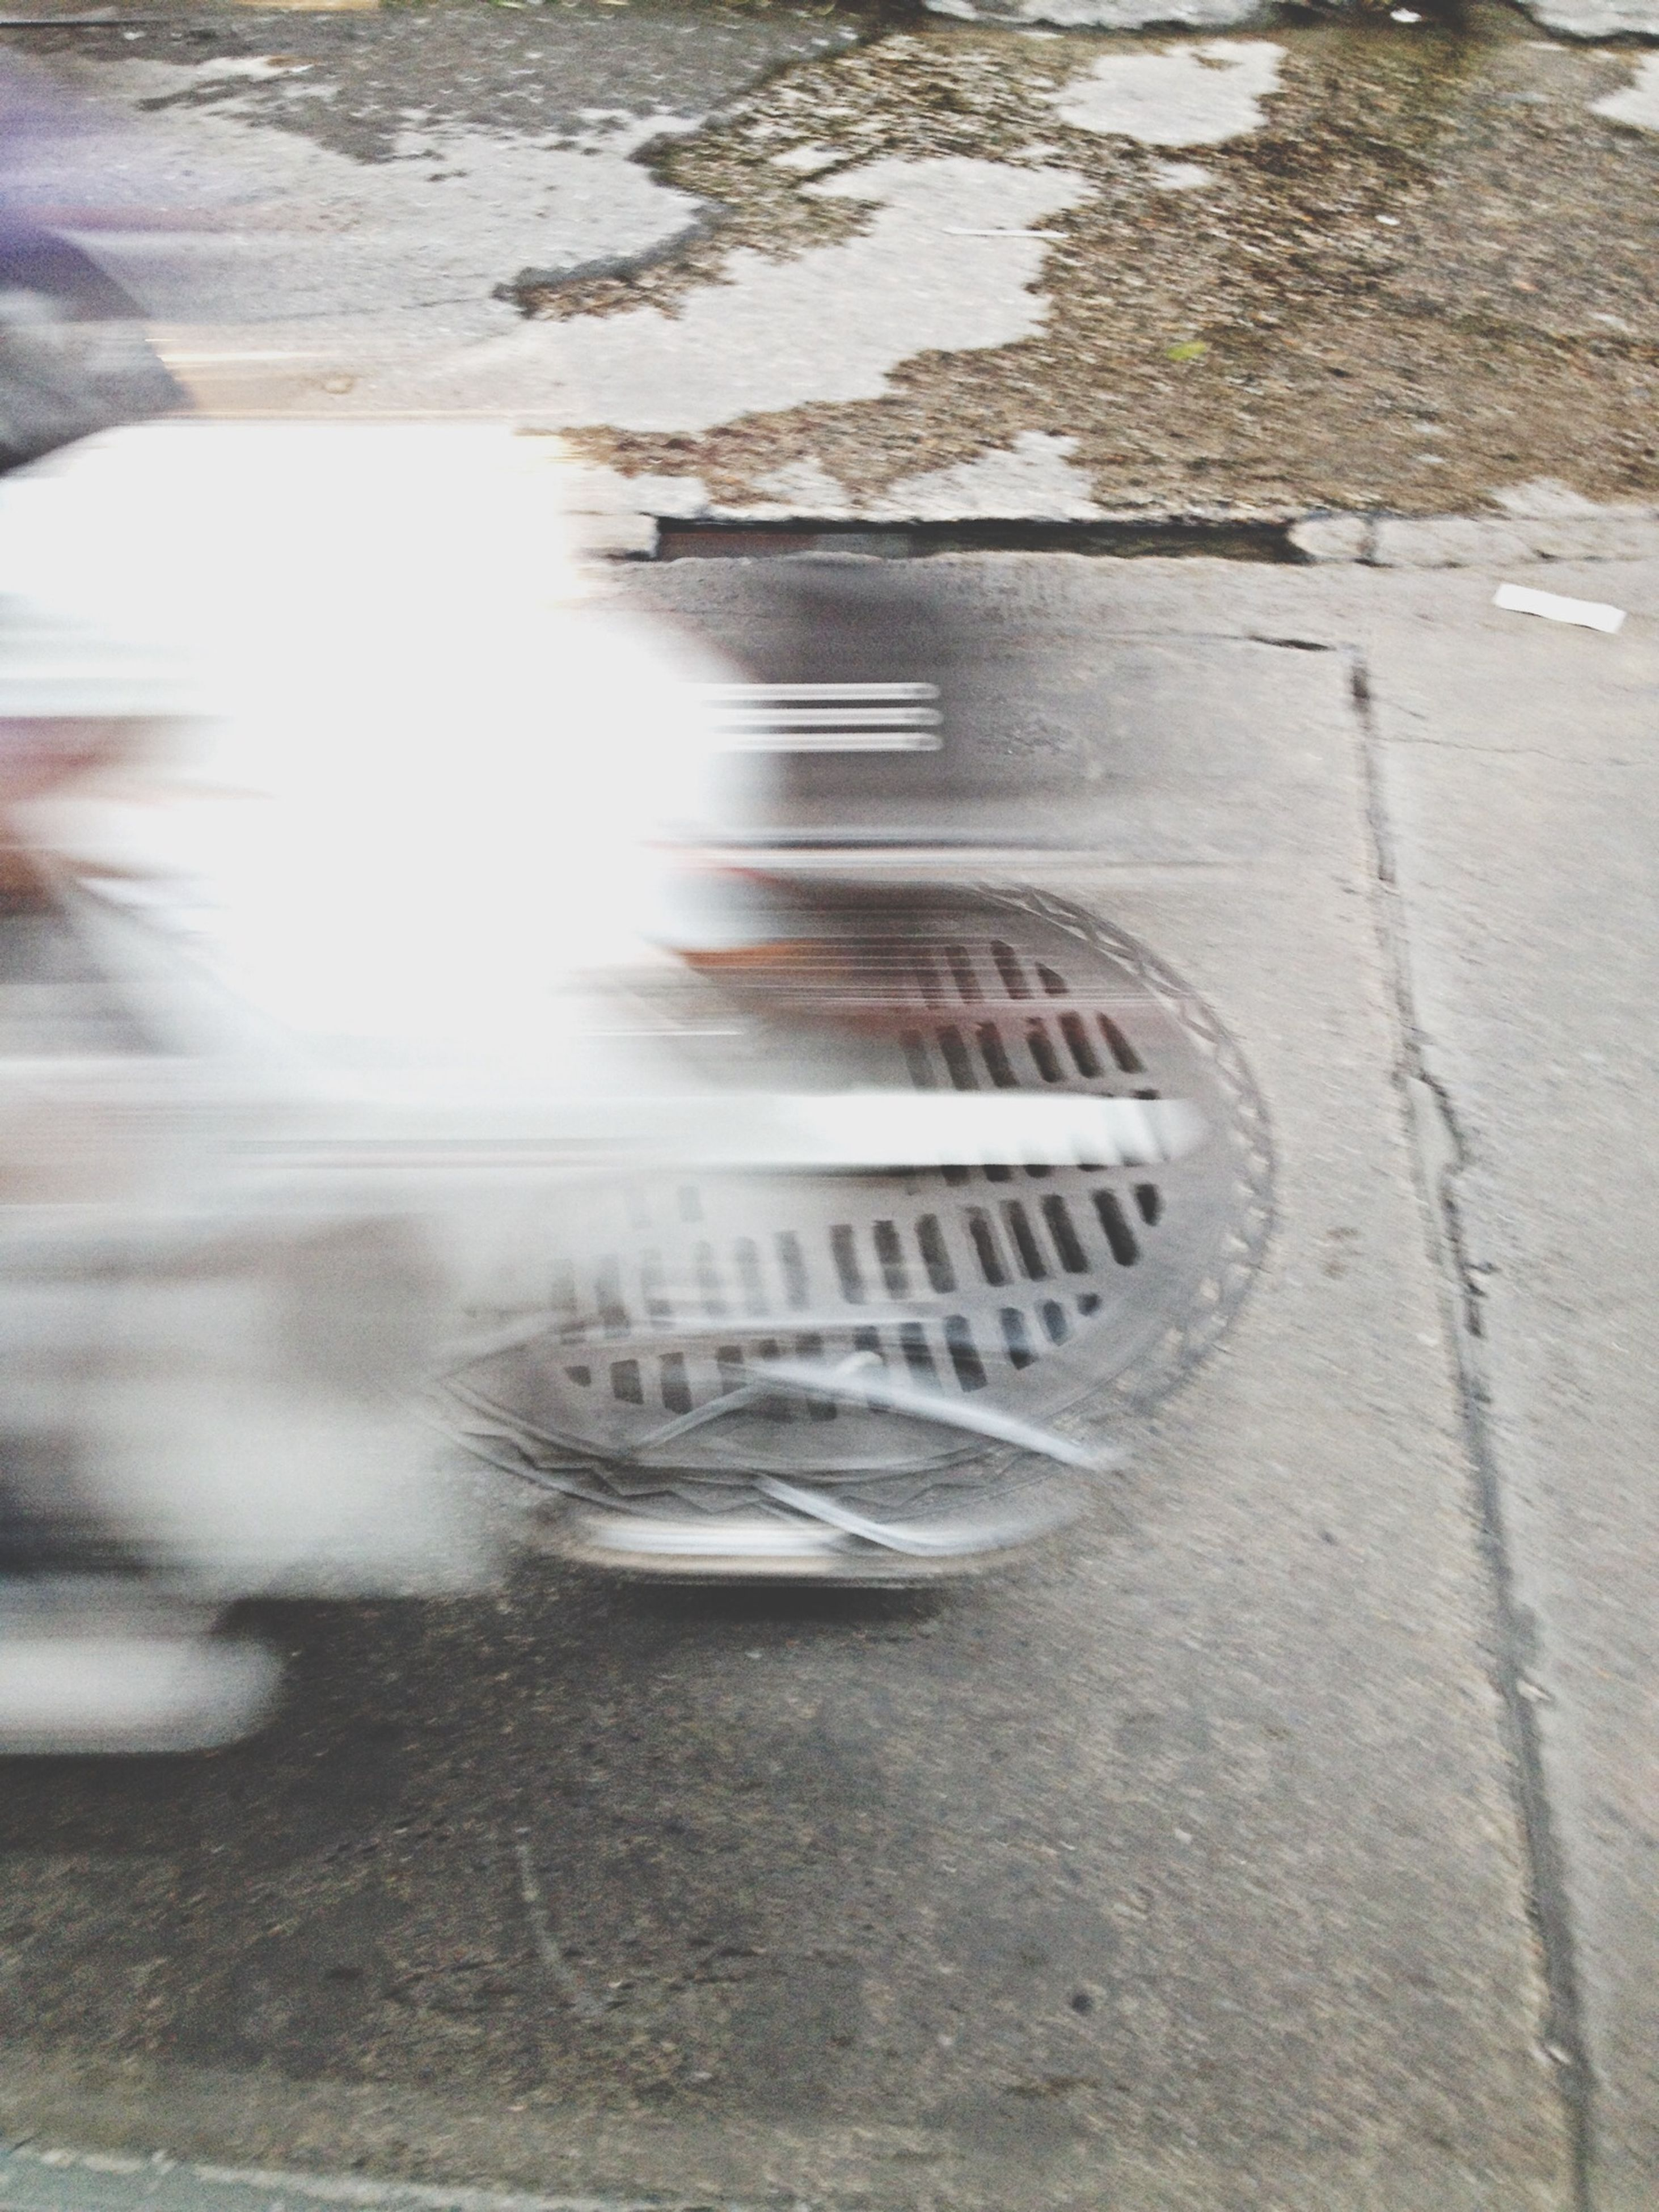 street, close-up, reflection, motion, road, water, day, wet, no people, transportation, outdoors, high angle view, sunlight, blurred motion, sidewalk, glass - material, focus on foreground, asphalt, transparent